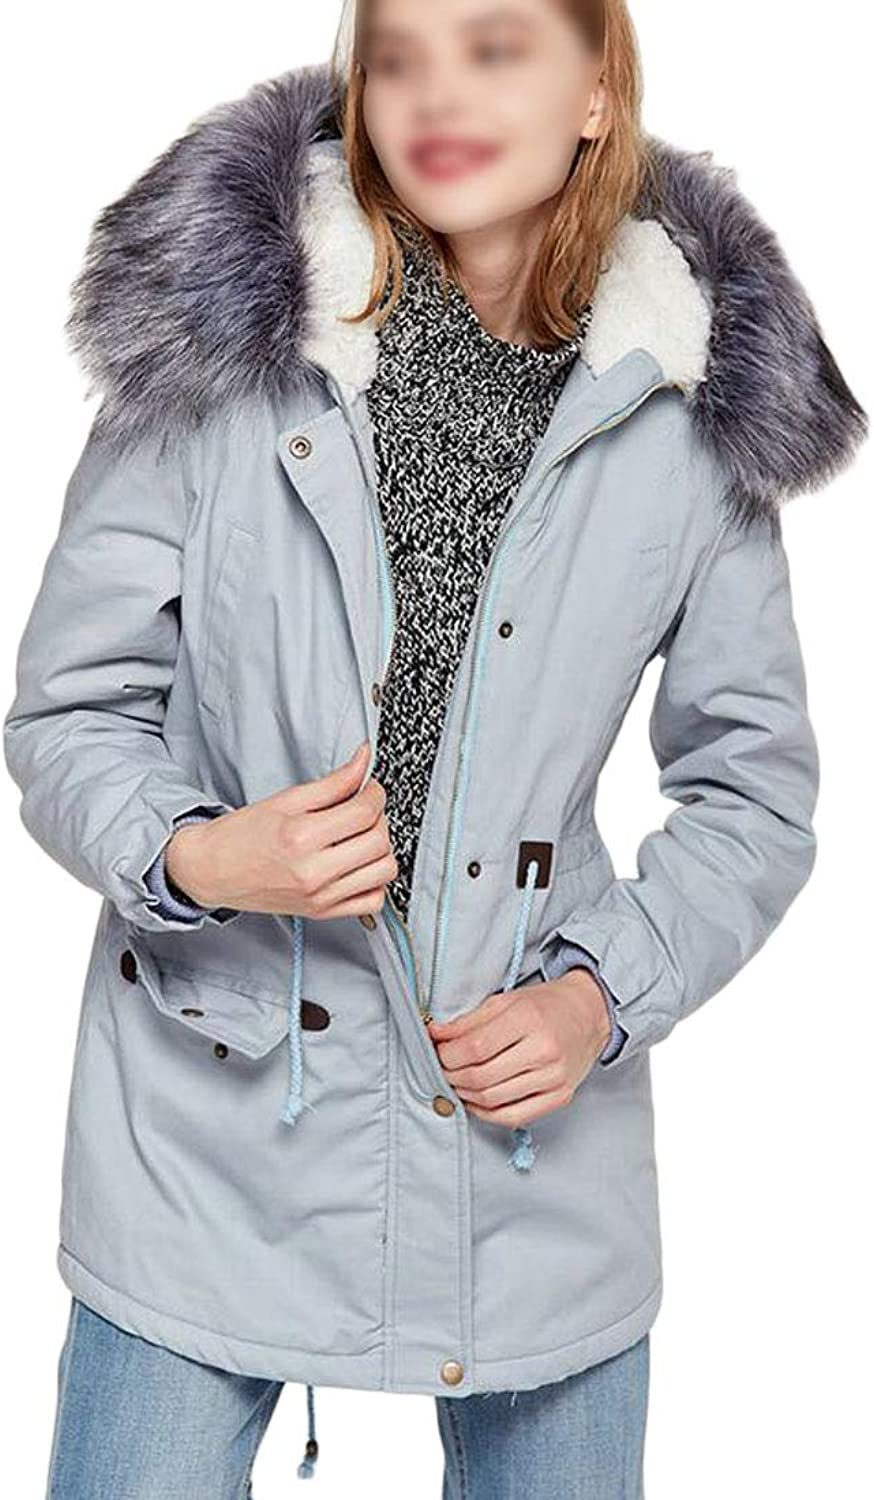 Hmarkt Women's Hooded Thicken Faux Fur Collar Lined Warm Cotton Anorak Coat with Hood